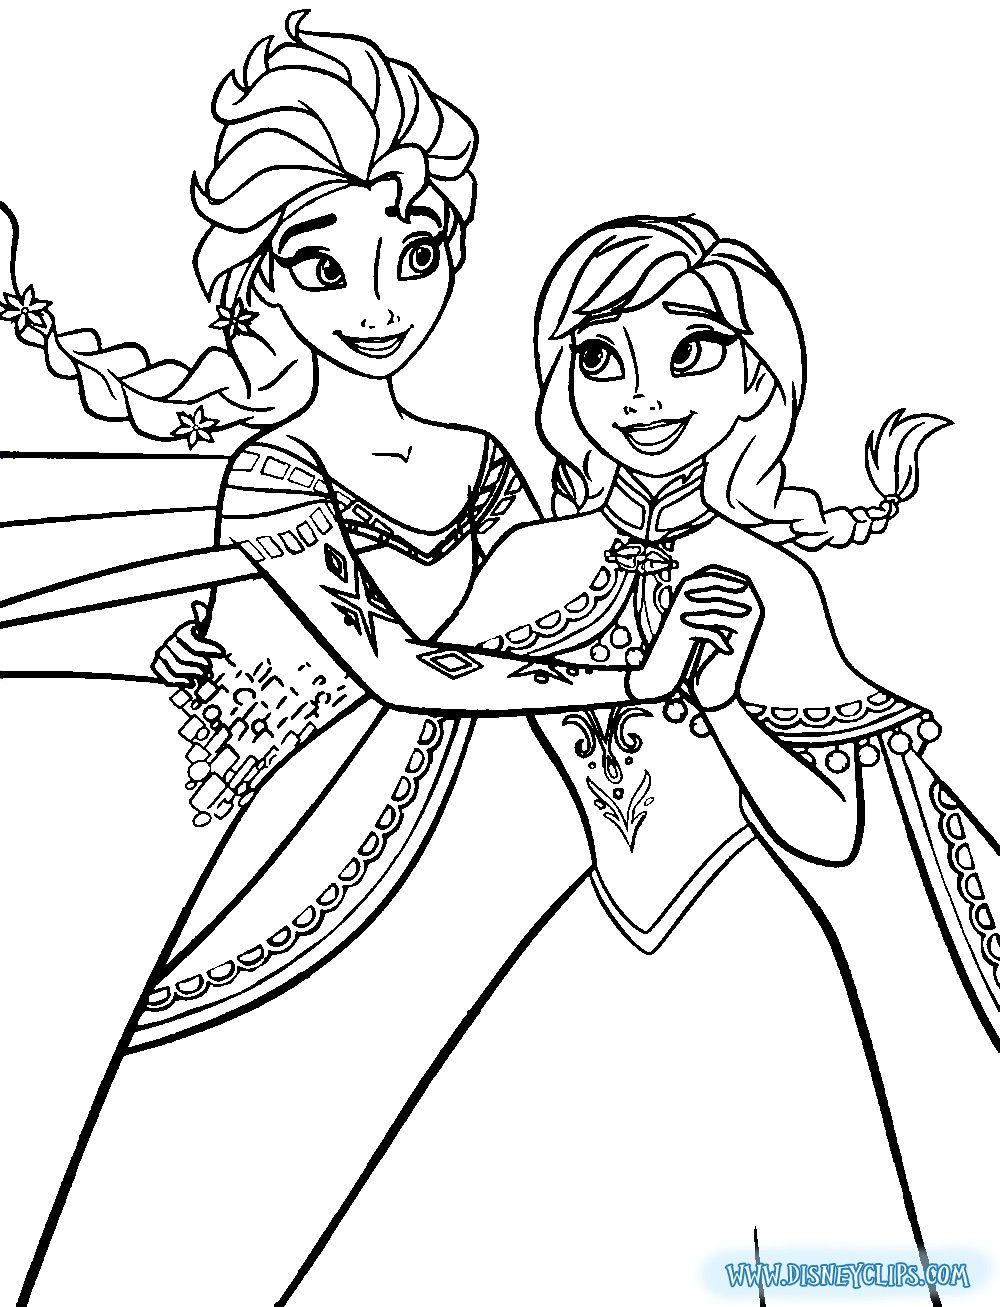 Printable Princess Anna Coloring Pages Through The Thousand Photographs On Line Rega Elsa Coloring Pages Disney Princess Coloring Pages Frozen Coloring Pages